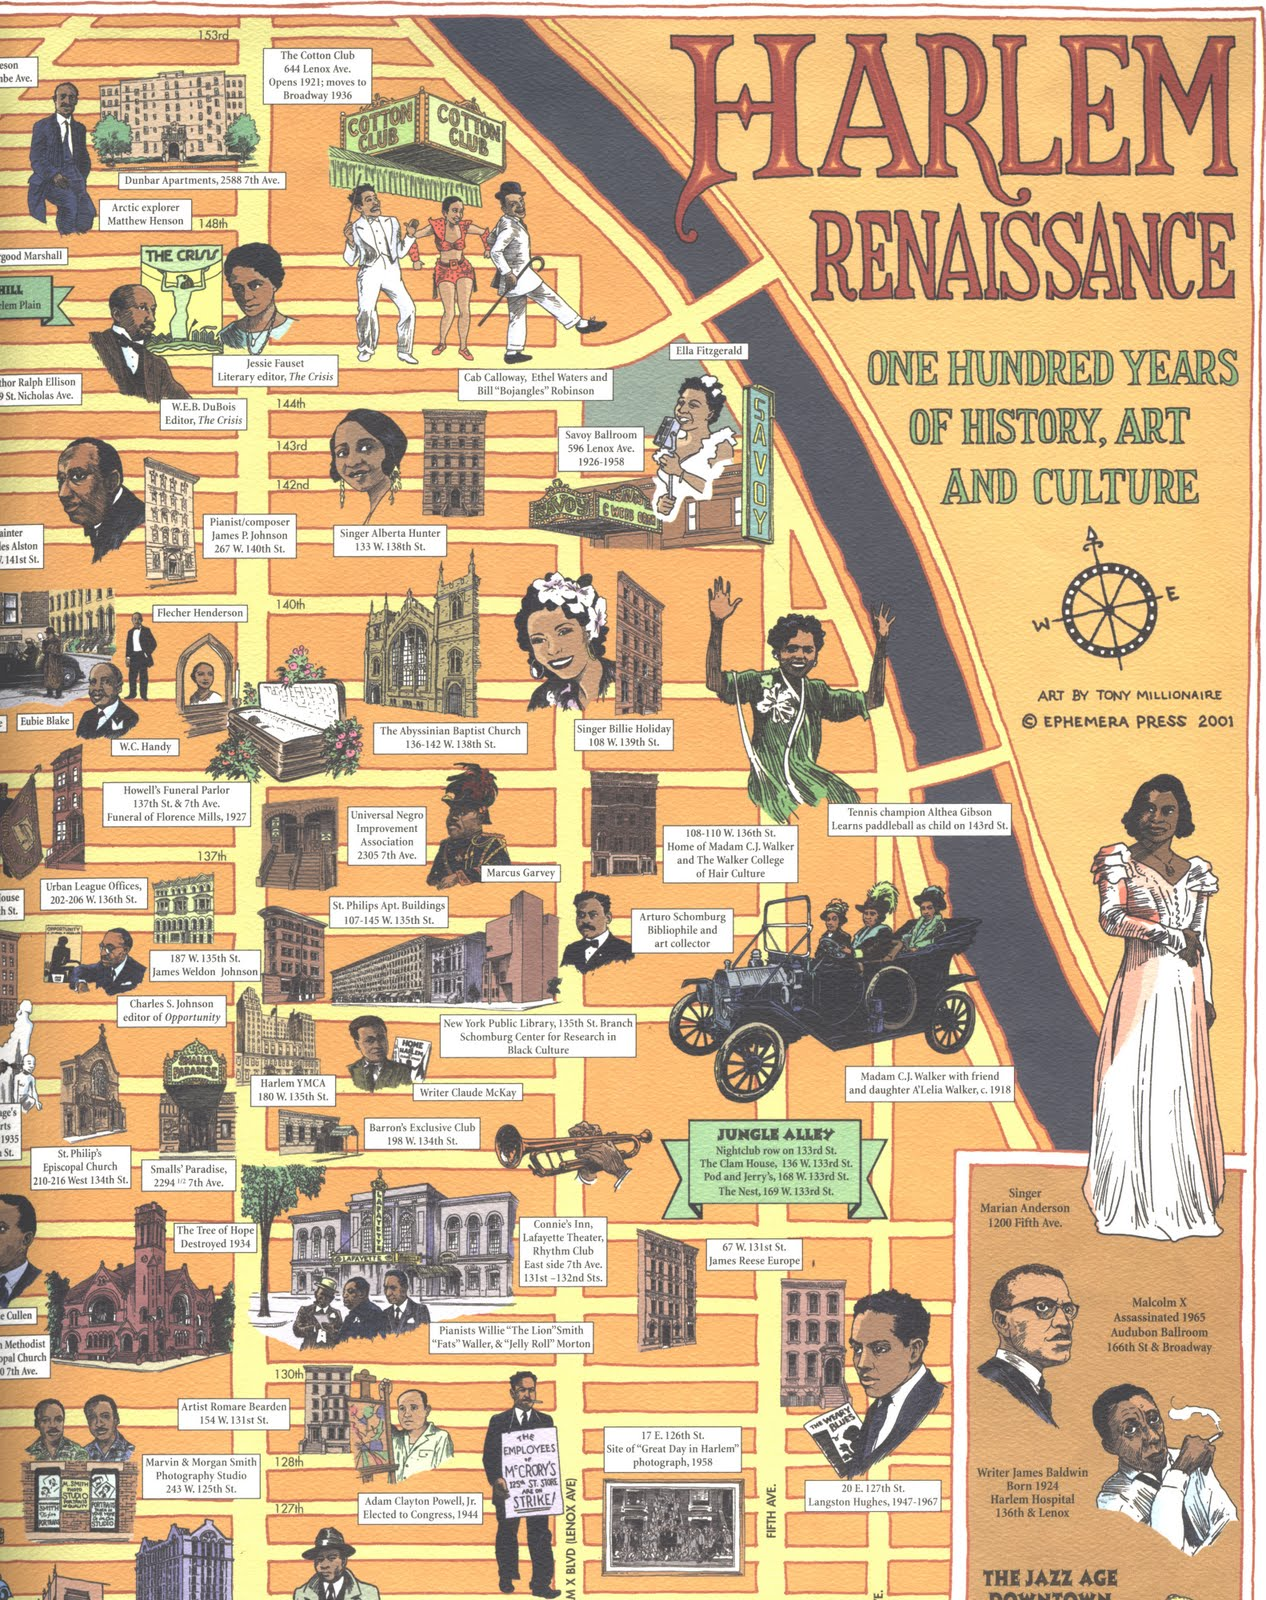 black collection essay harlem in music renaissance The harlem renaissance and its indignant aftermath: rethinking literary history and political  an essay collection,  the harlem renaissance in black and.